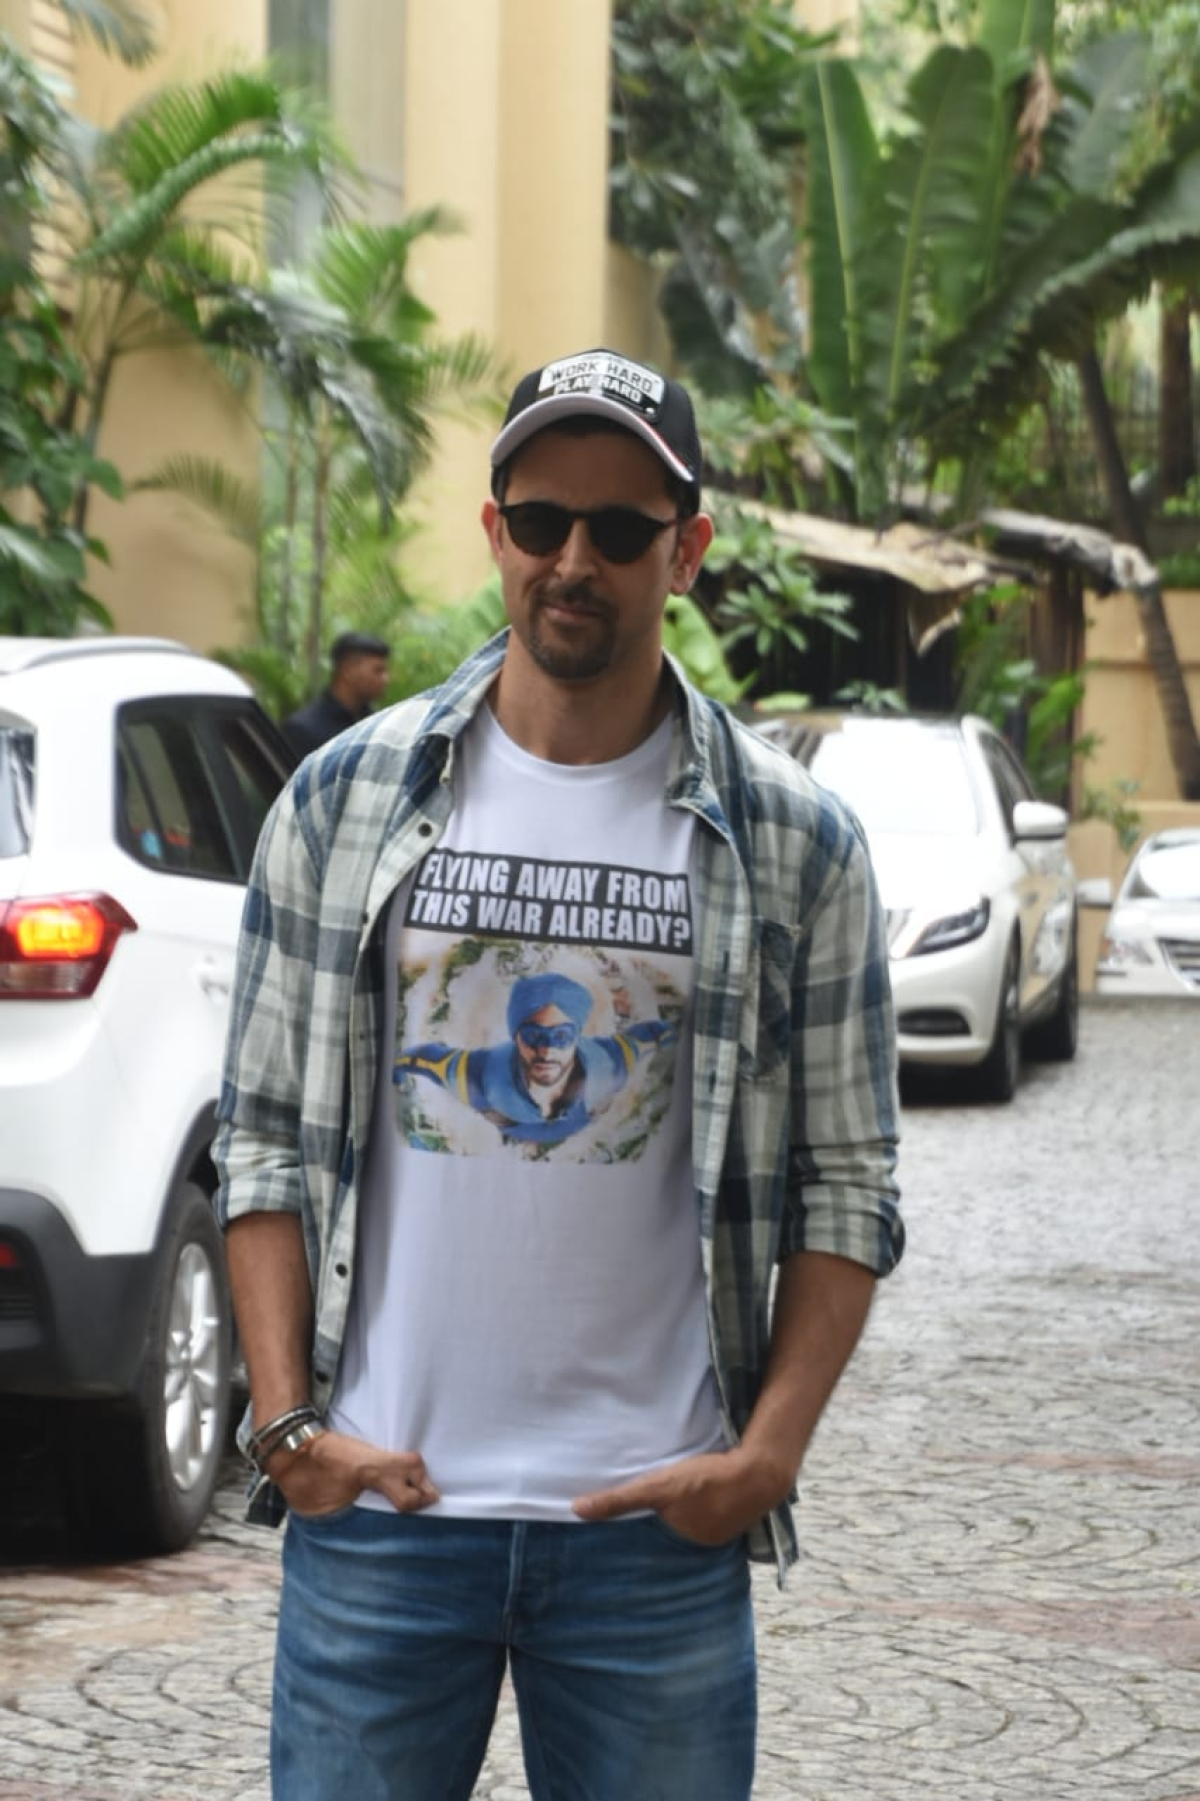 Hrithik roshan snapped in the city